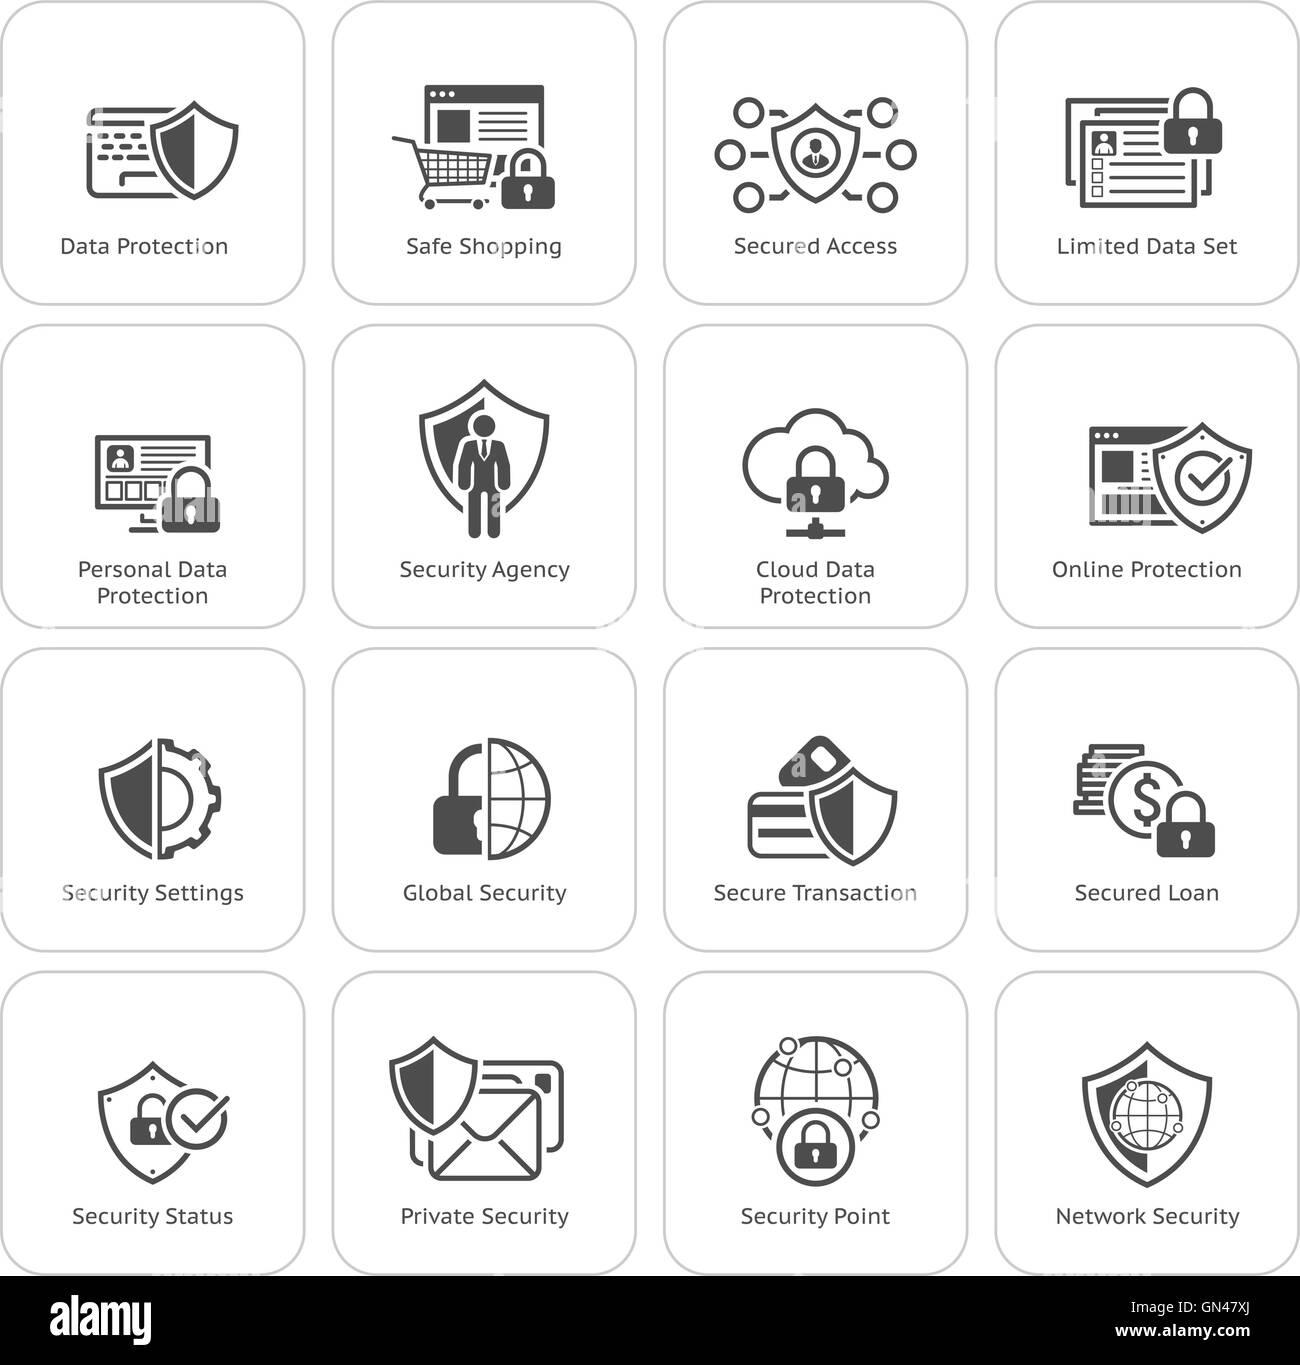 Flat Design Protection and Security Icons Set. - Stock Image